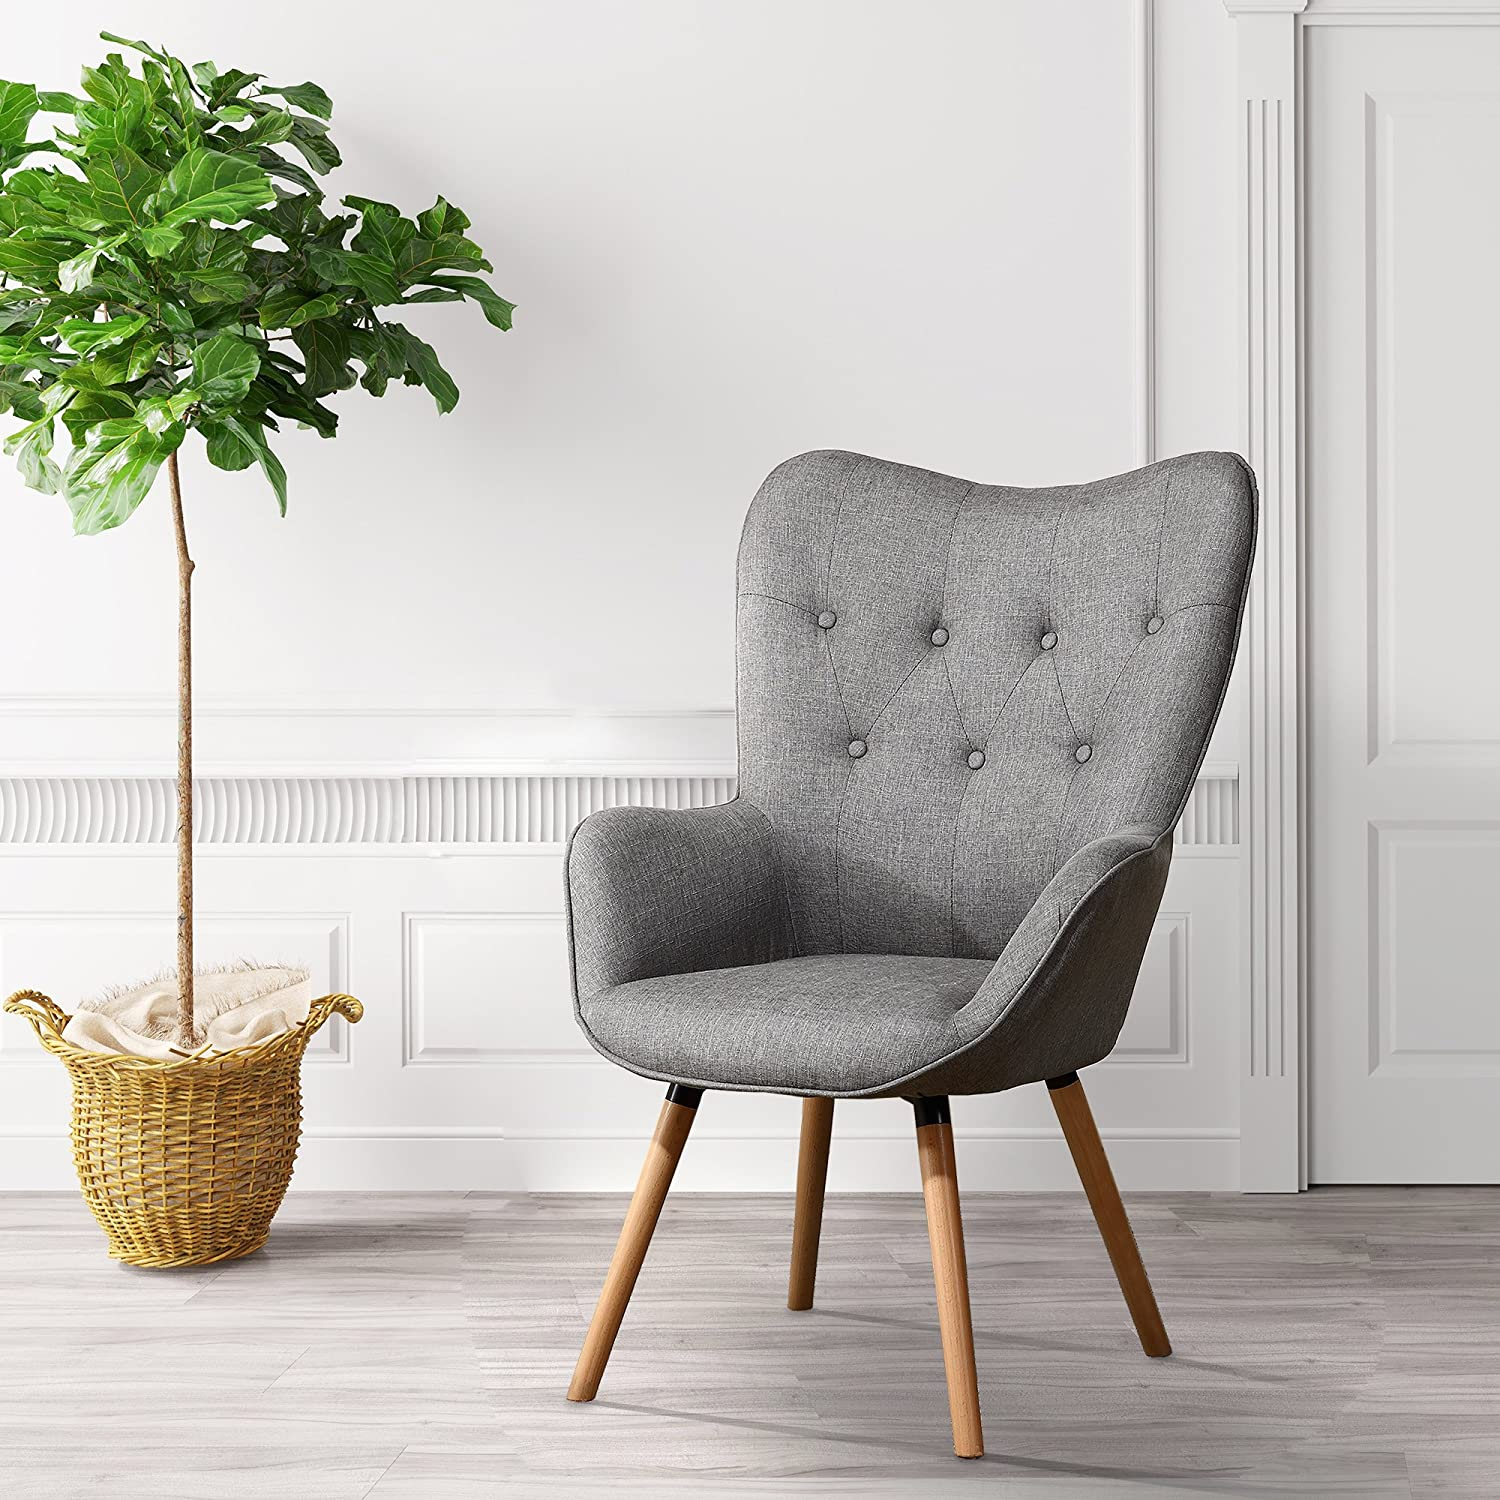 Tremendous Lssbought Stylish Fabric Accent Chair Modern Muted Fabric Arm Chair Gray Andrewgaddart Wooden Chair Designs For Living Room Andrewgaddartcom